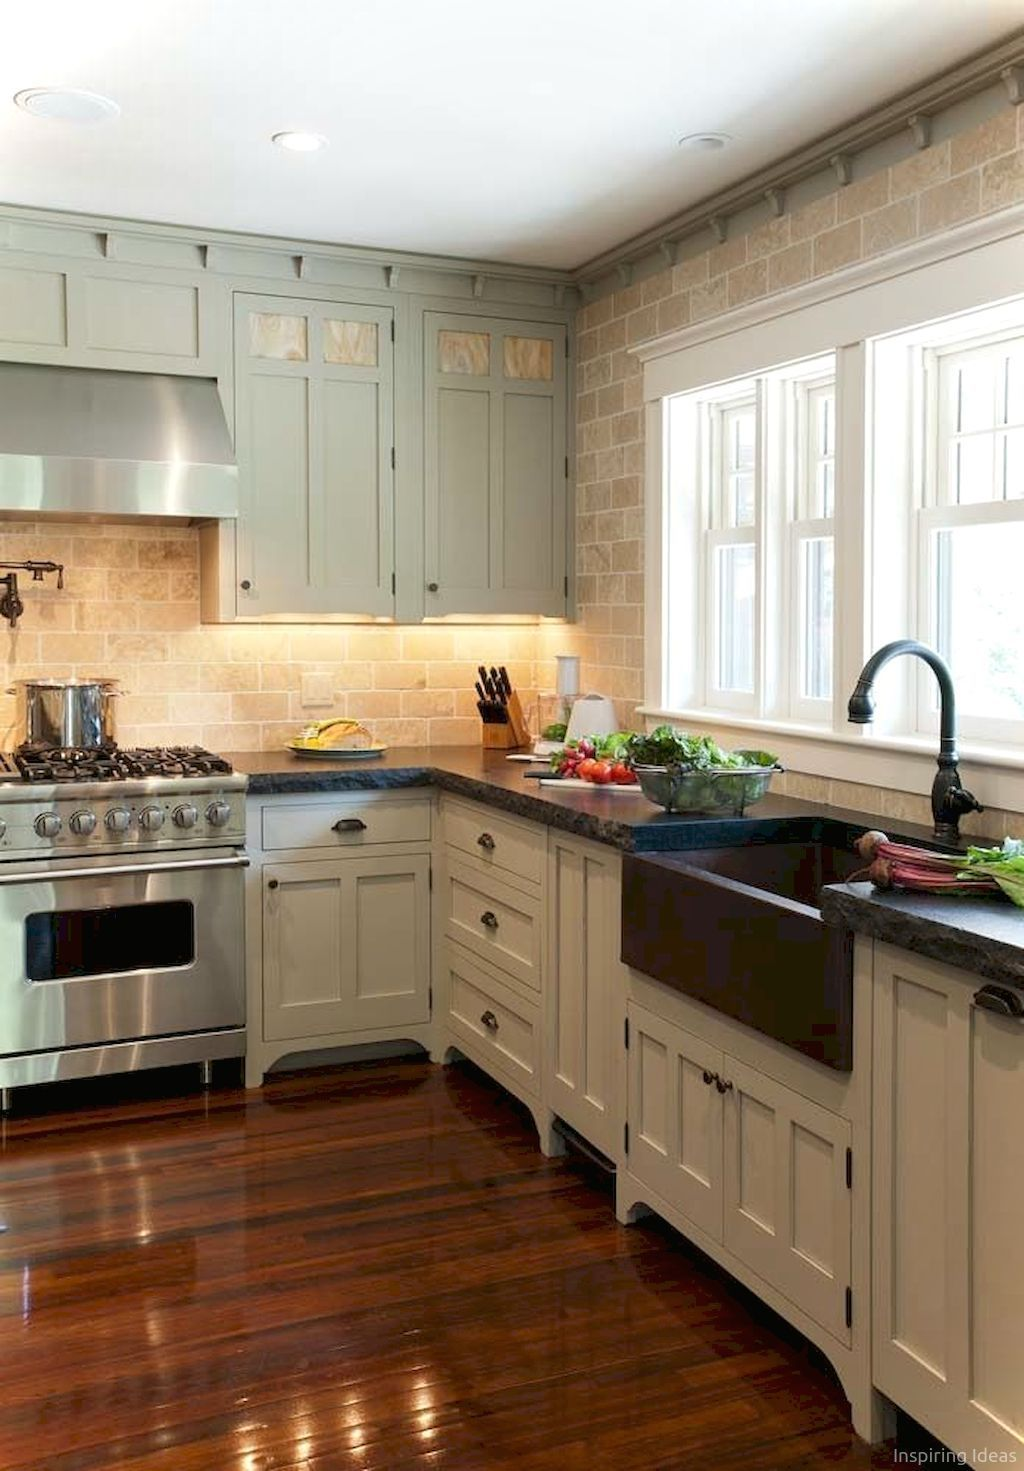 004 Cottage Kitchen Cabinets Ideas Farmhouse Style Rustic Farmhouse Kitchen Kitchen Cabinet Design Kitchen Inspirations